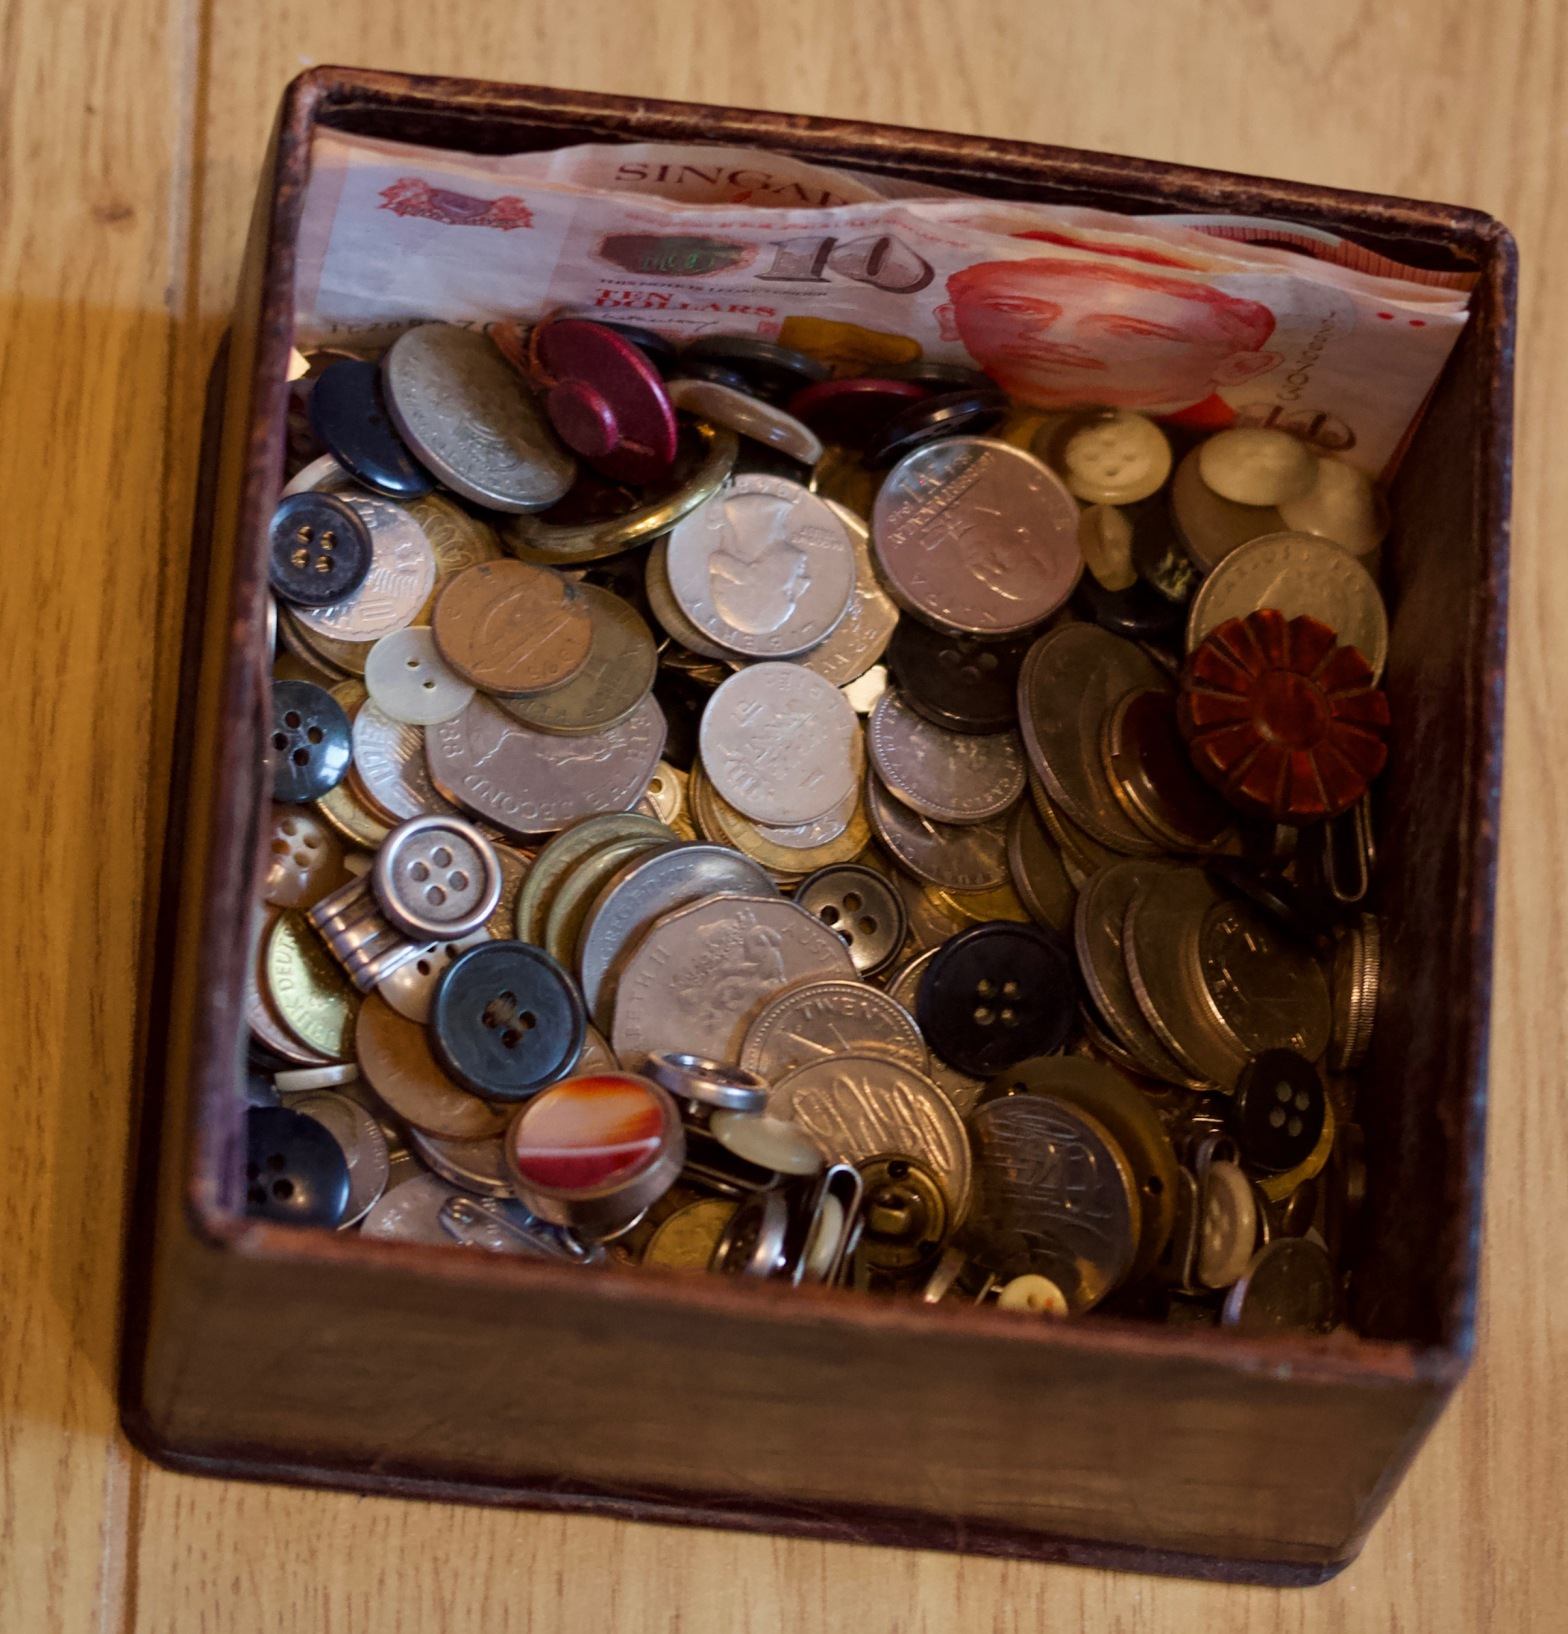 Coins, notes, buttons